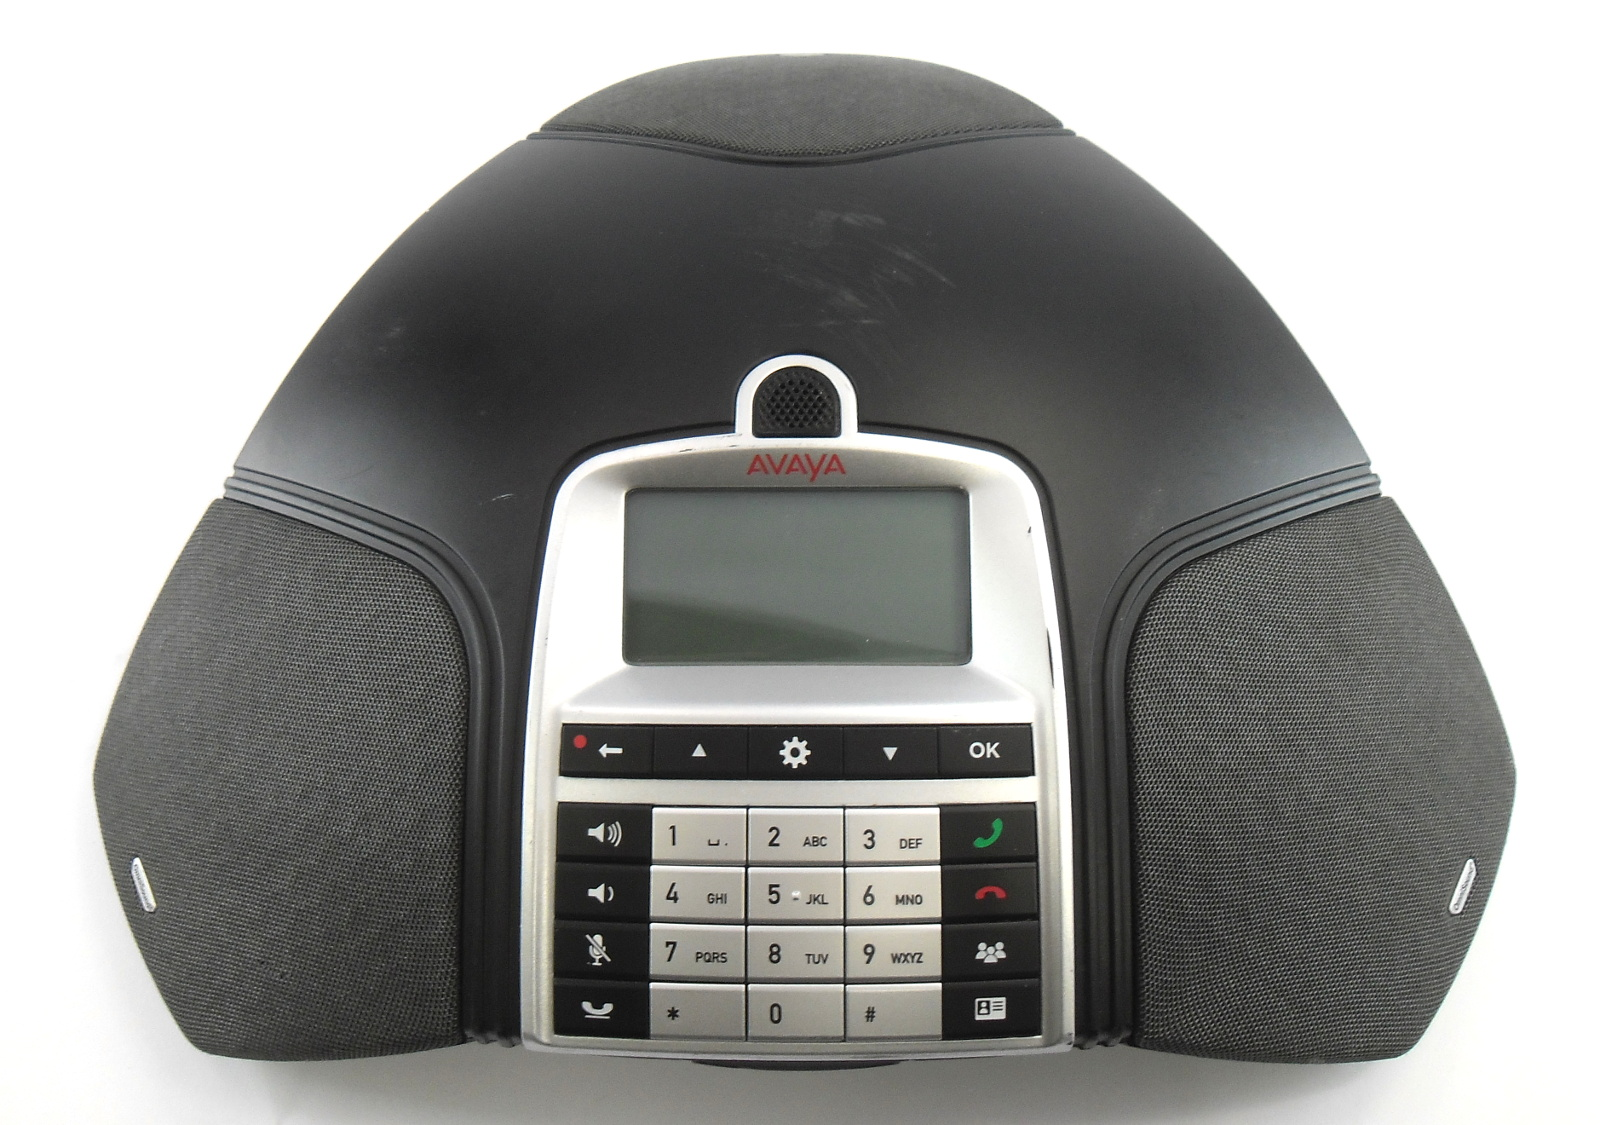 Avaya B149 Analog Conference phone 700501533